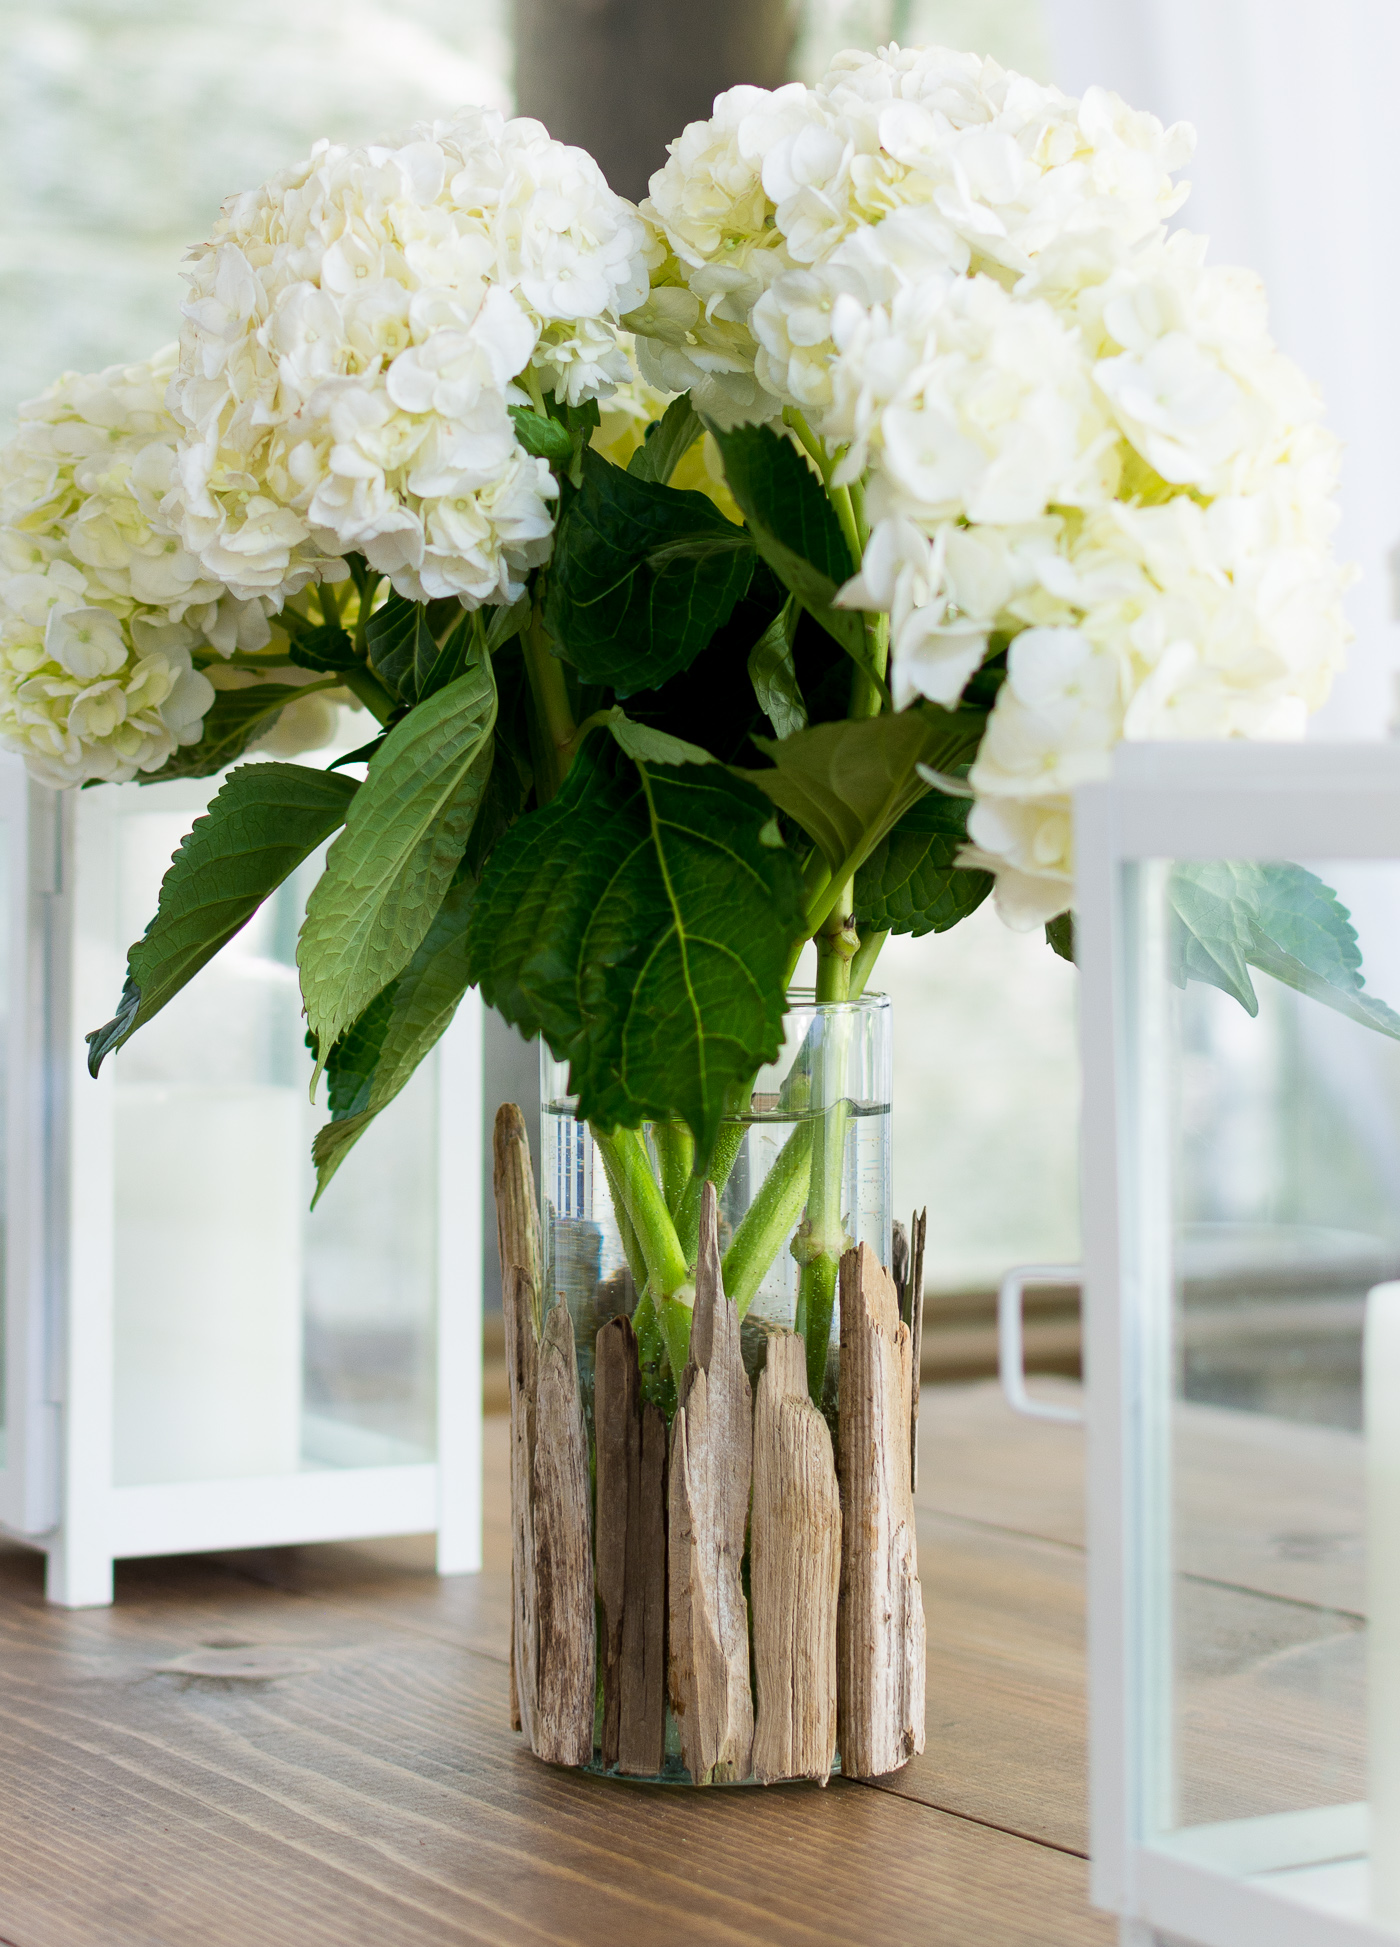 Coastal Decor with Driftwood